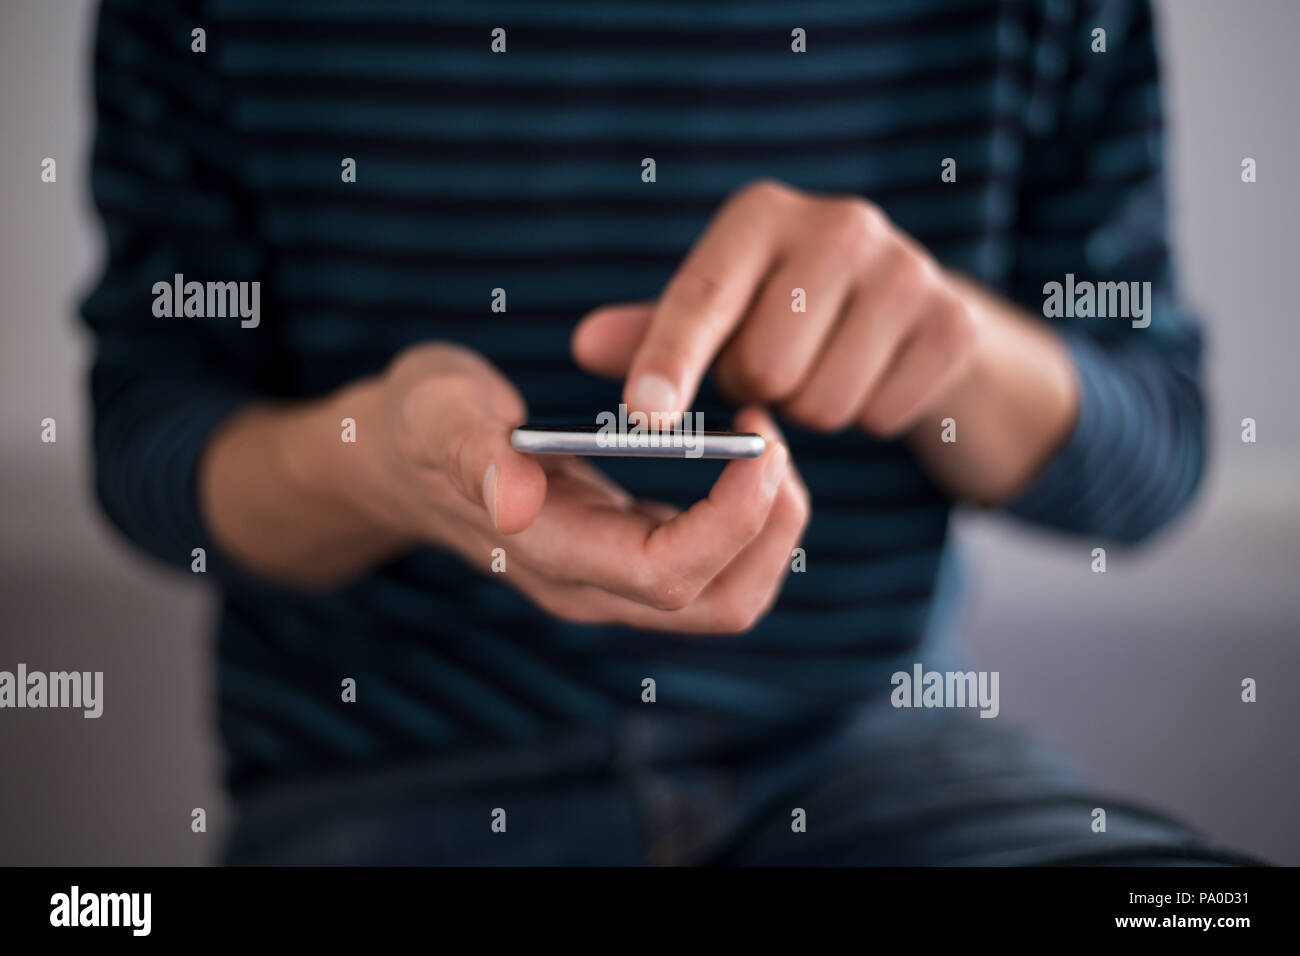 Young man using a touchscreen smartphone - Hands close-up - Using technology - Stock Image